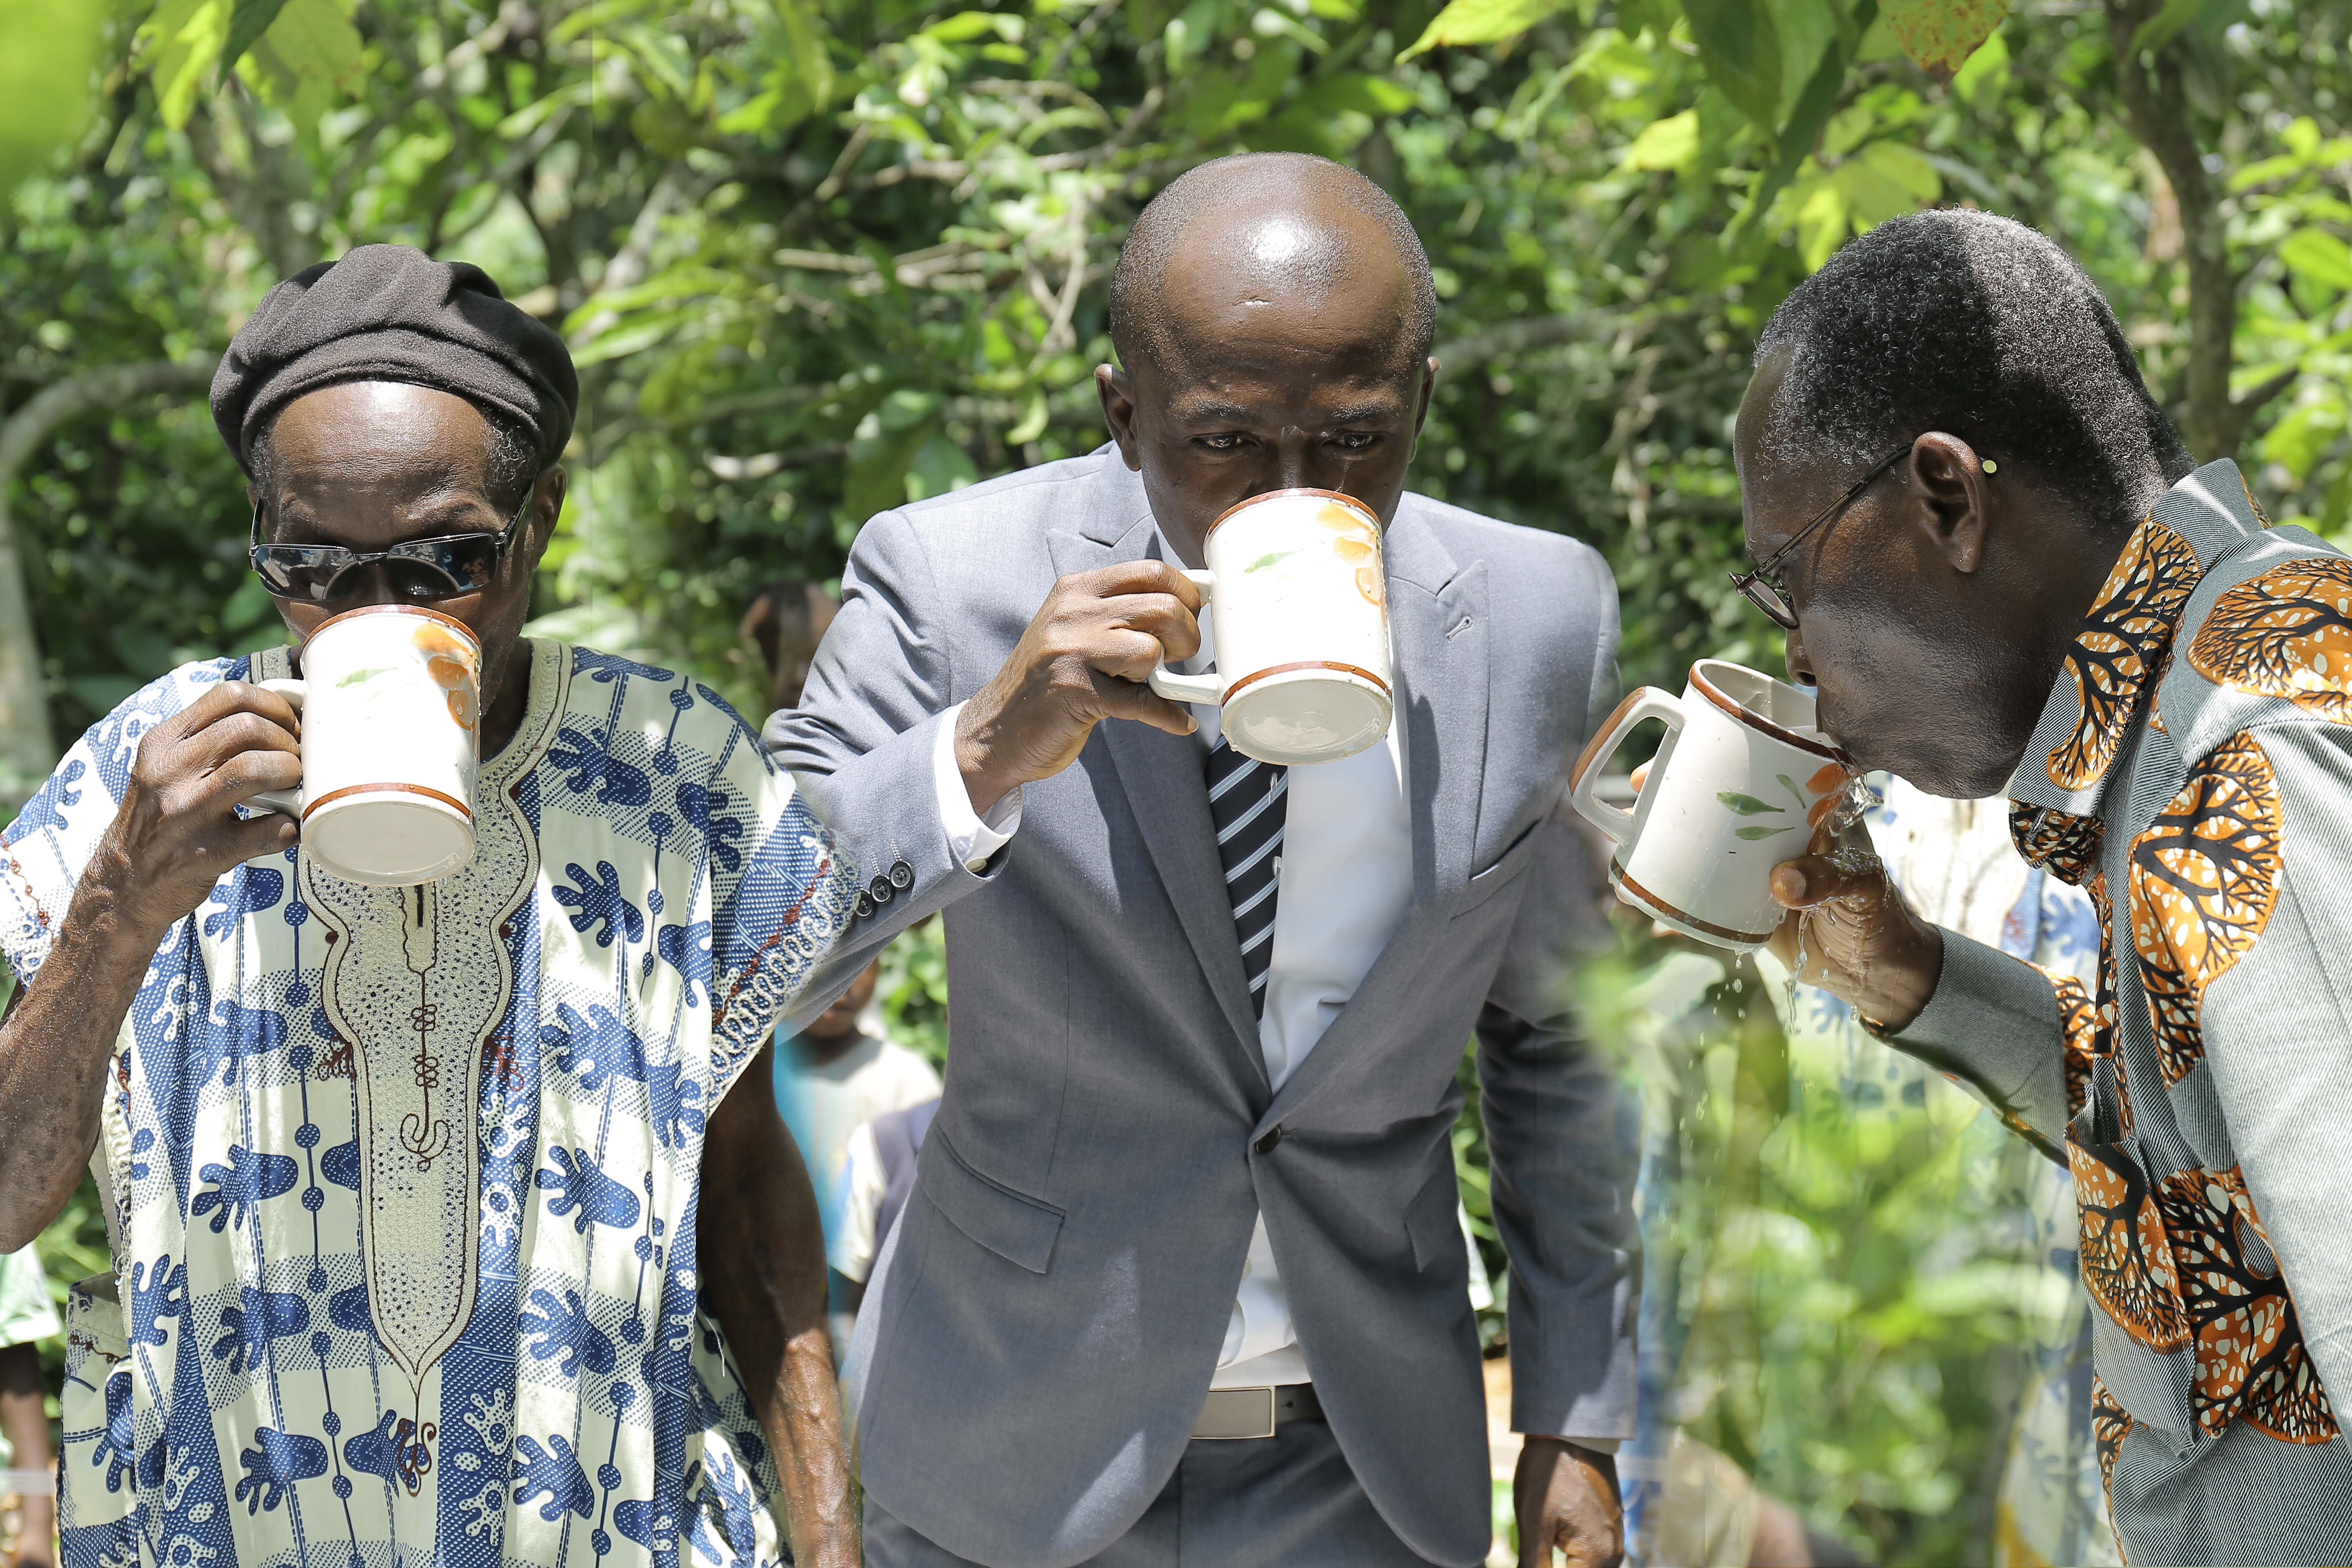 The Chief Of Kwabena Saa, CEO, Goldman Capital And Founder Of Theovision International(From Left) Tasting The Water From The New Borehole